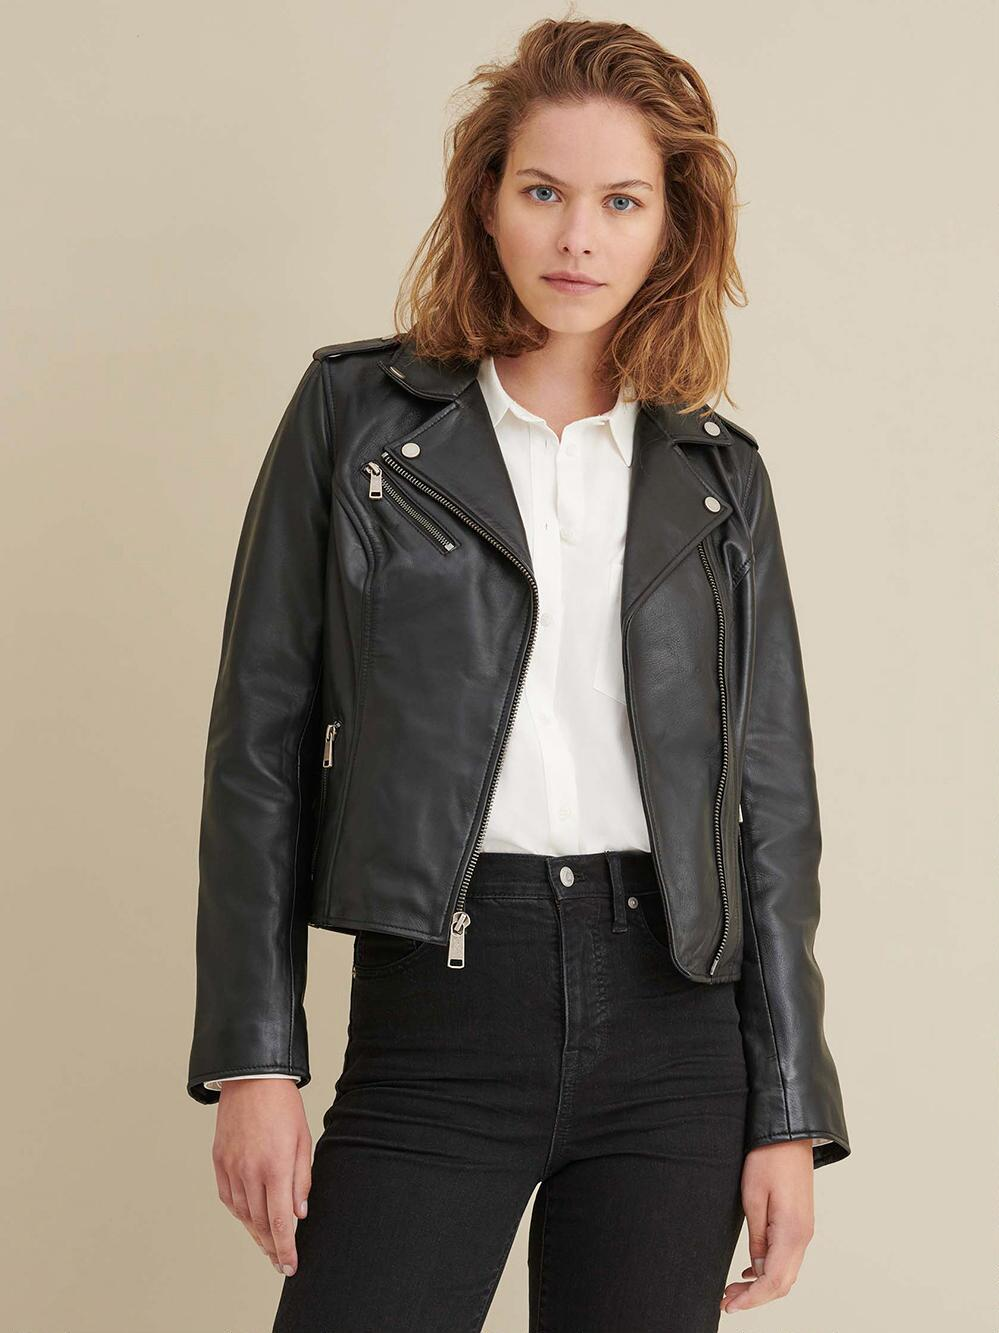 Cheaper alternative to AllSaints: Wilsons Leather